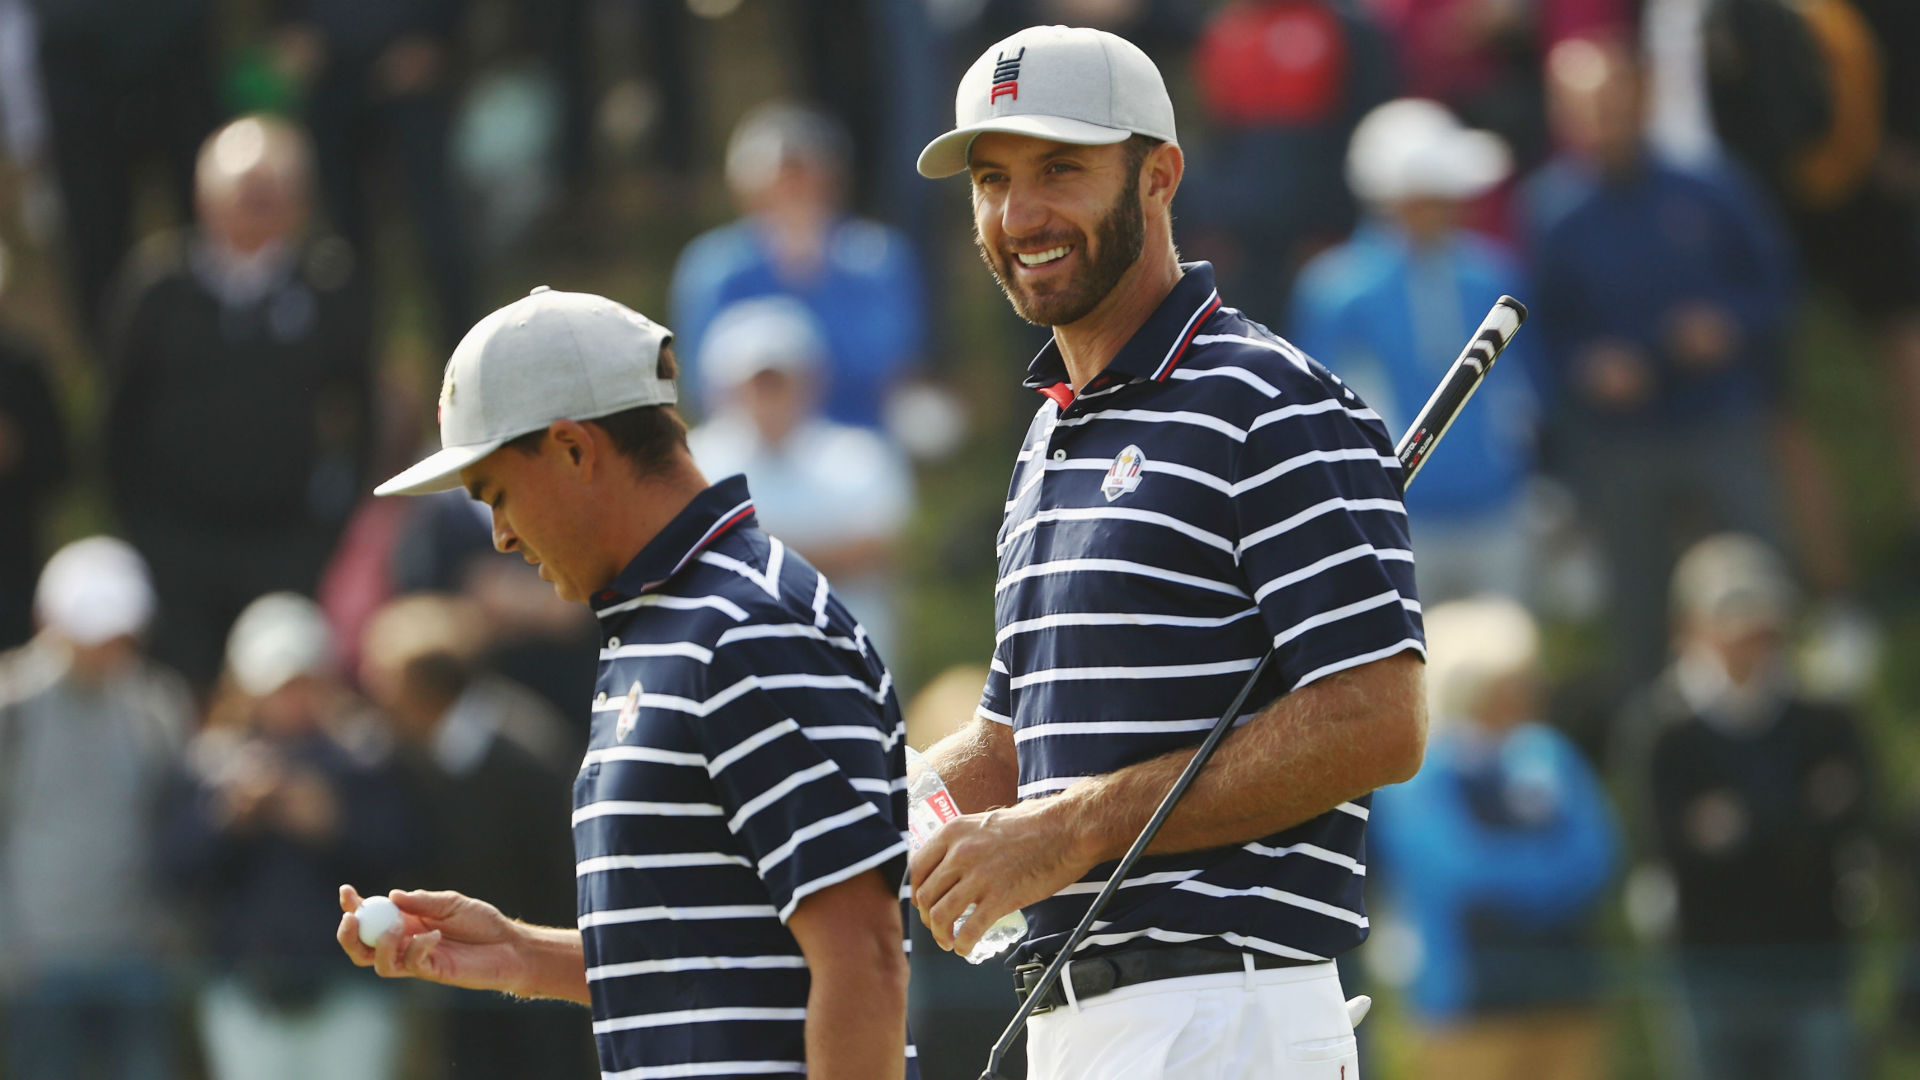 Europe extends Ryder Cup lead to 10